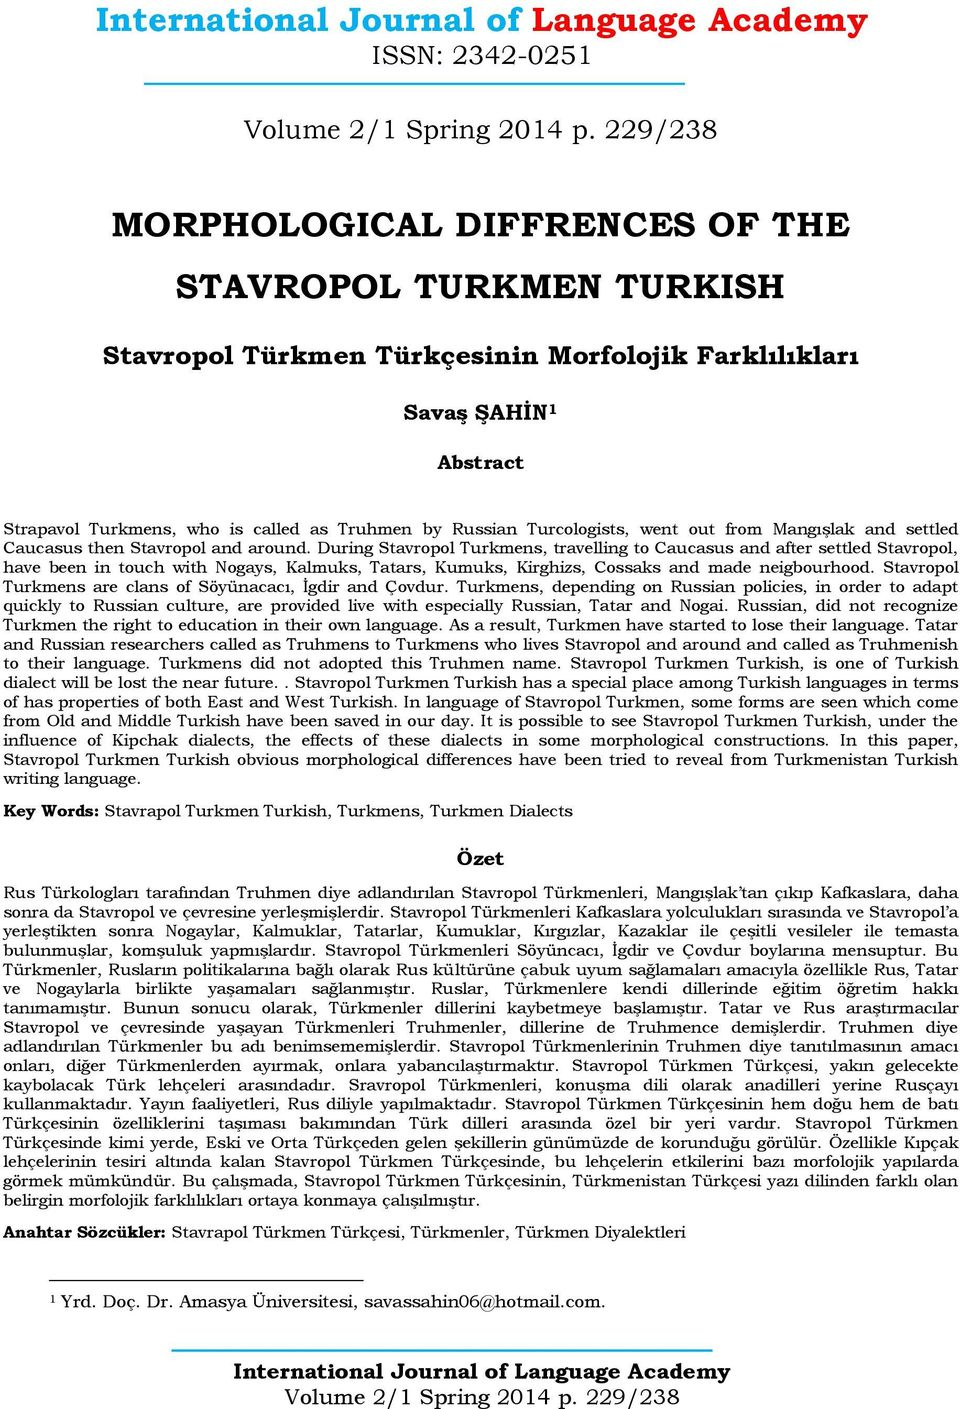 During Stavropol Turkmens, travelling to Caucasus and after settled Stavropol, have been in touch with Nogays, Kalmuks, Tatars, Kumuks, Kirghizs, Cossaks and made neigbourhood.